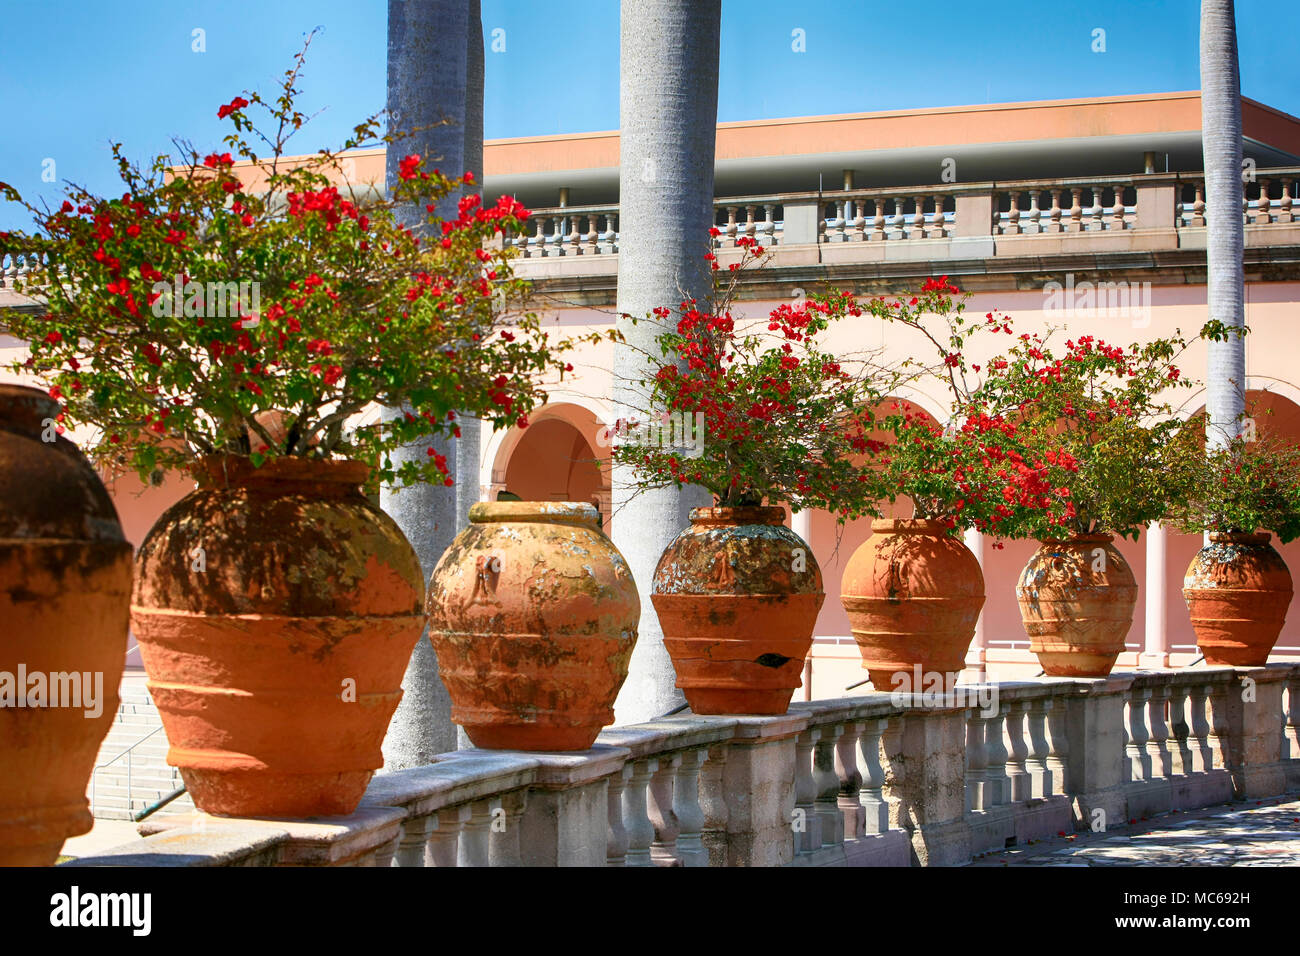 Large Terracotta pots in the garden at the Ringling Museum of Art in ...